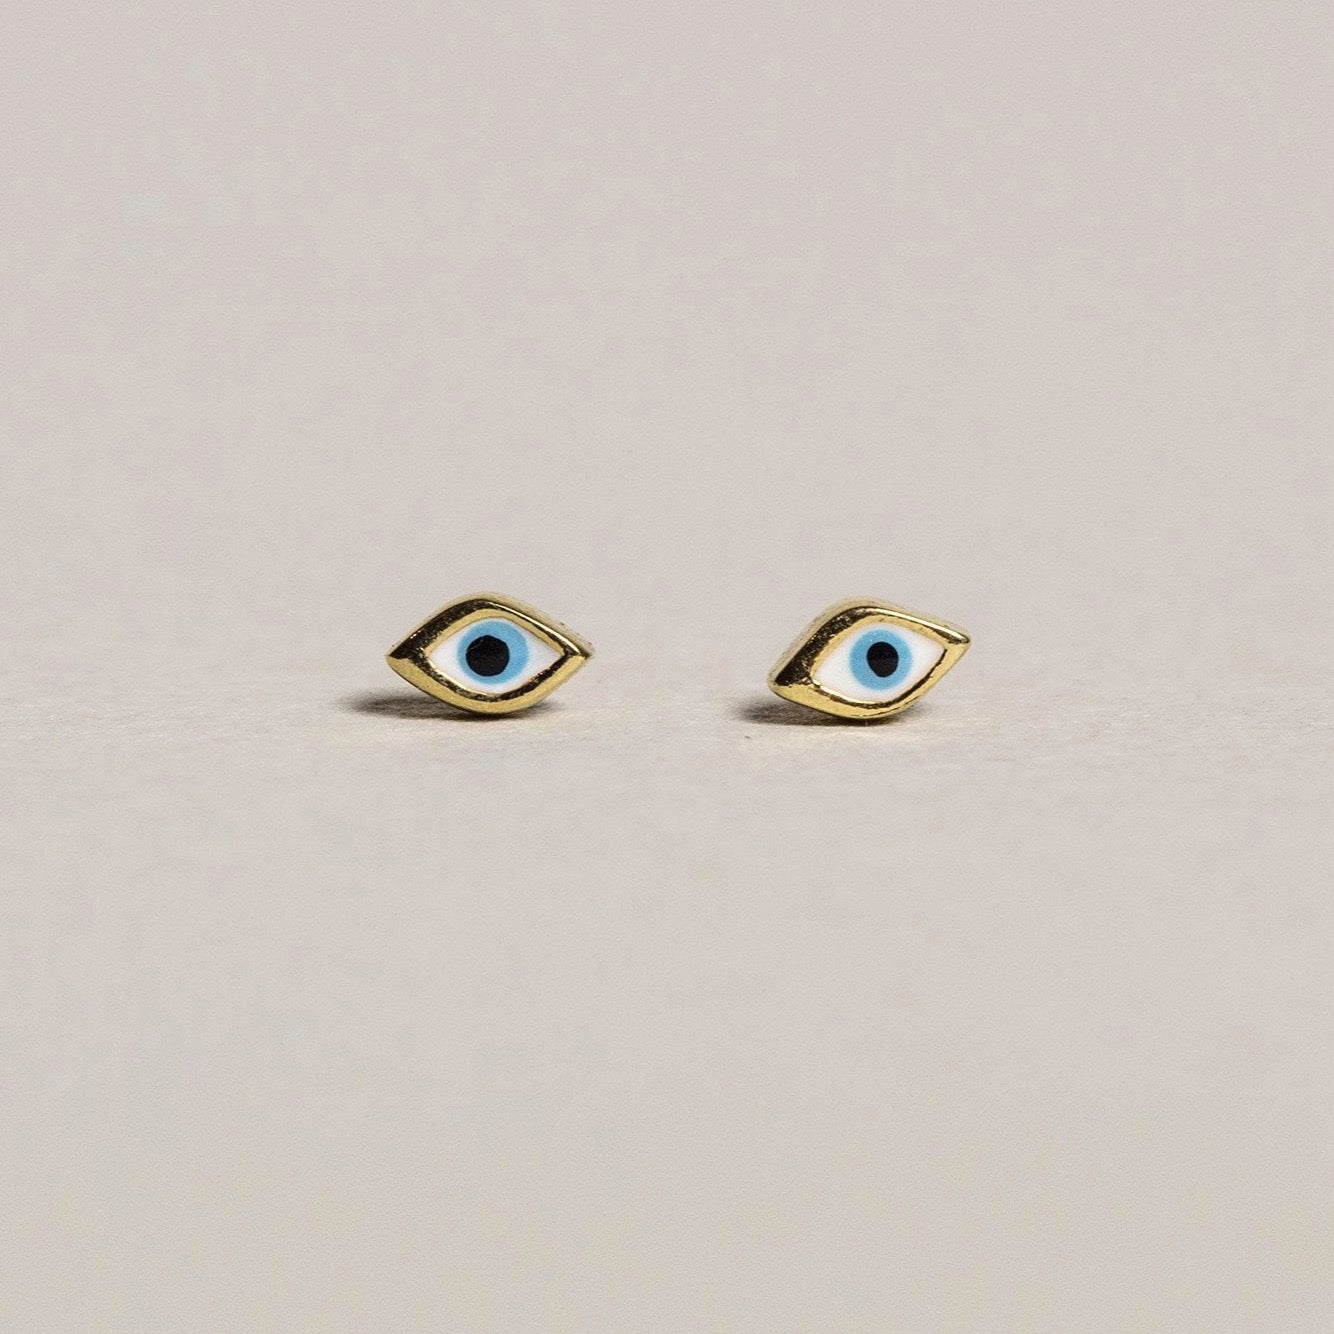 fantastic 'evil eye' micro studs brilliant for multi-pierced!